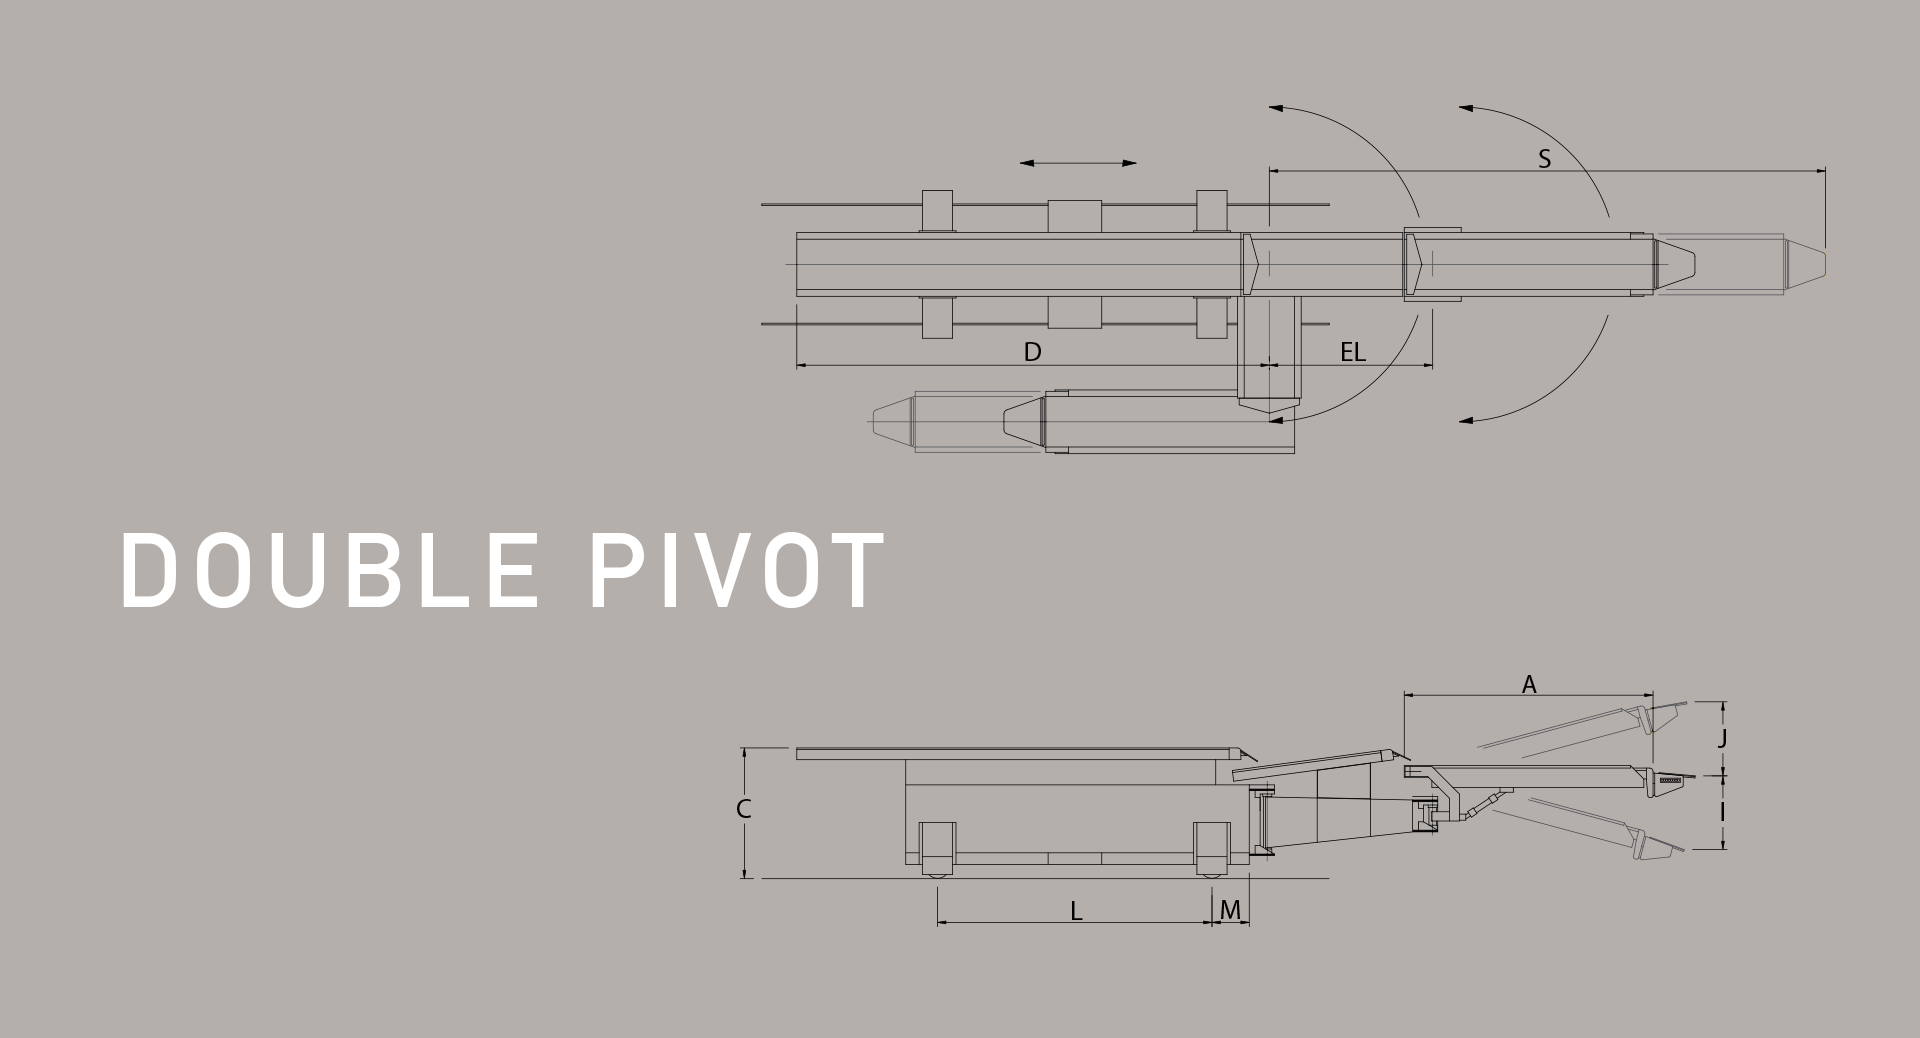 hight resolution of double pivoting railcar loader diagram